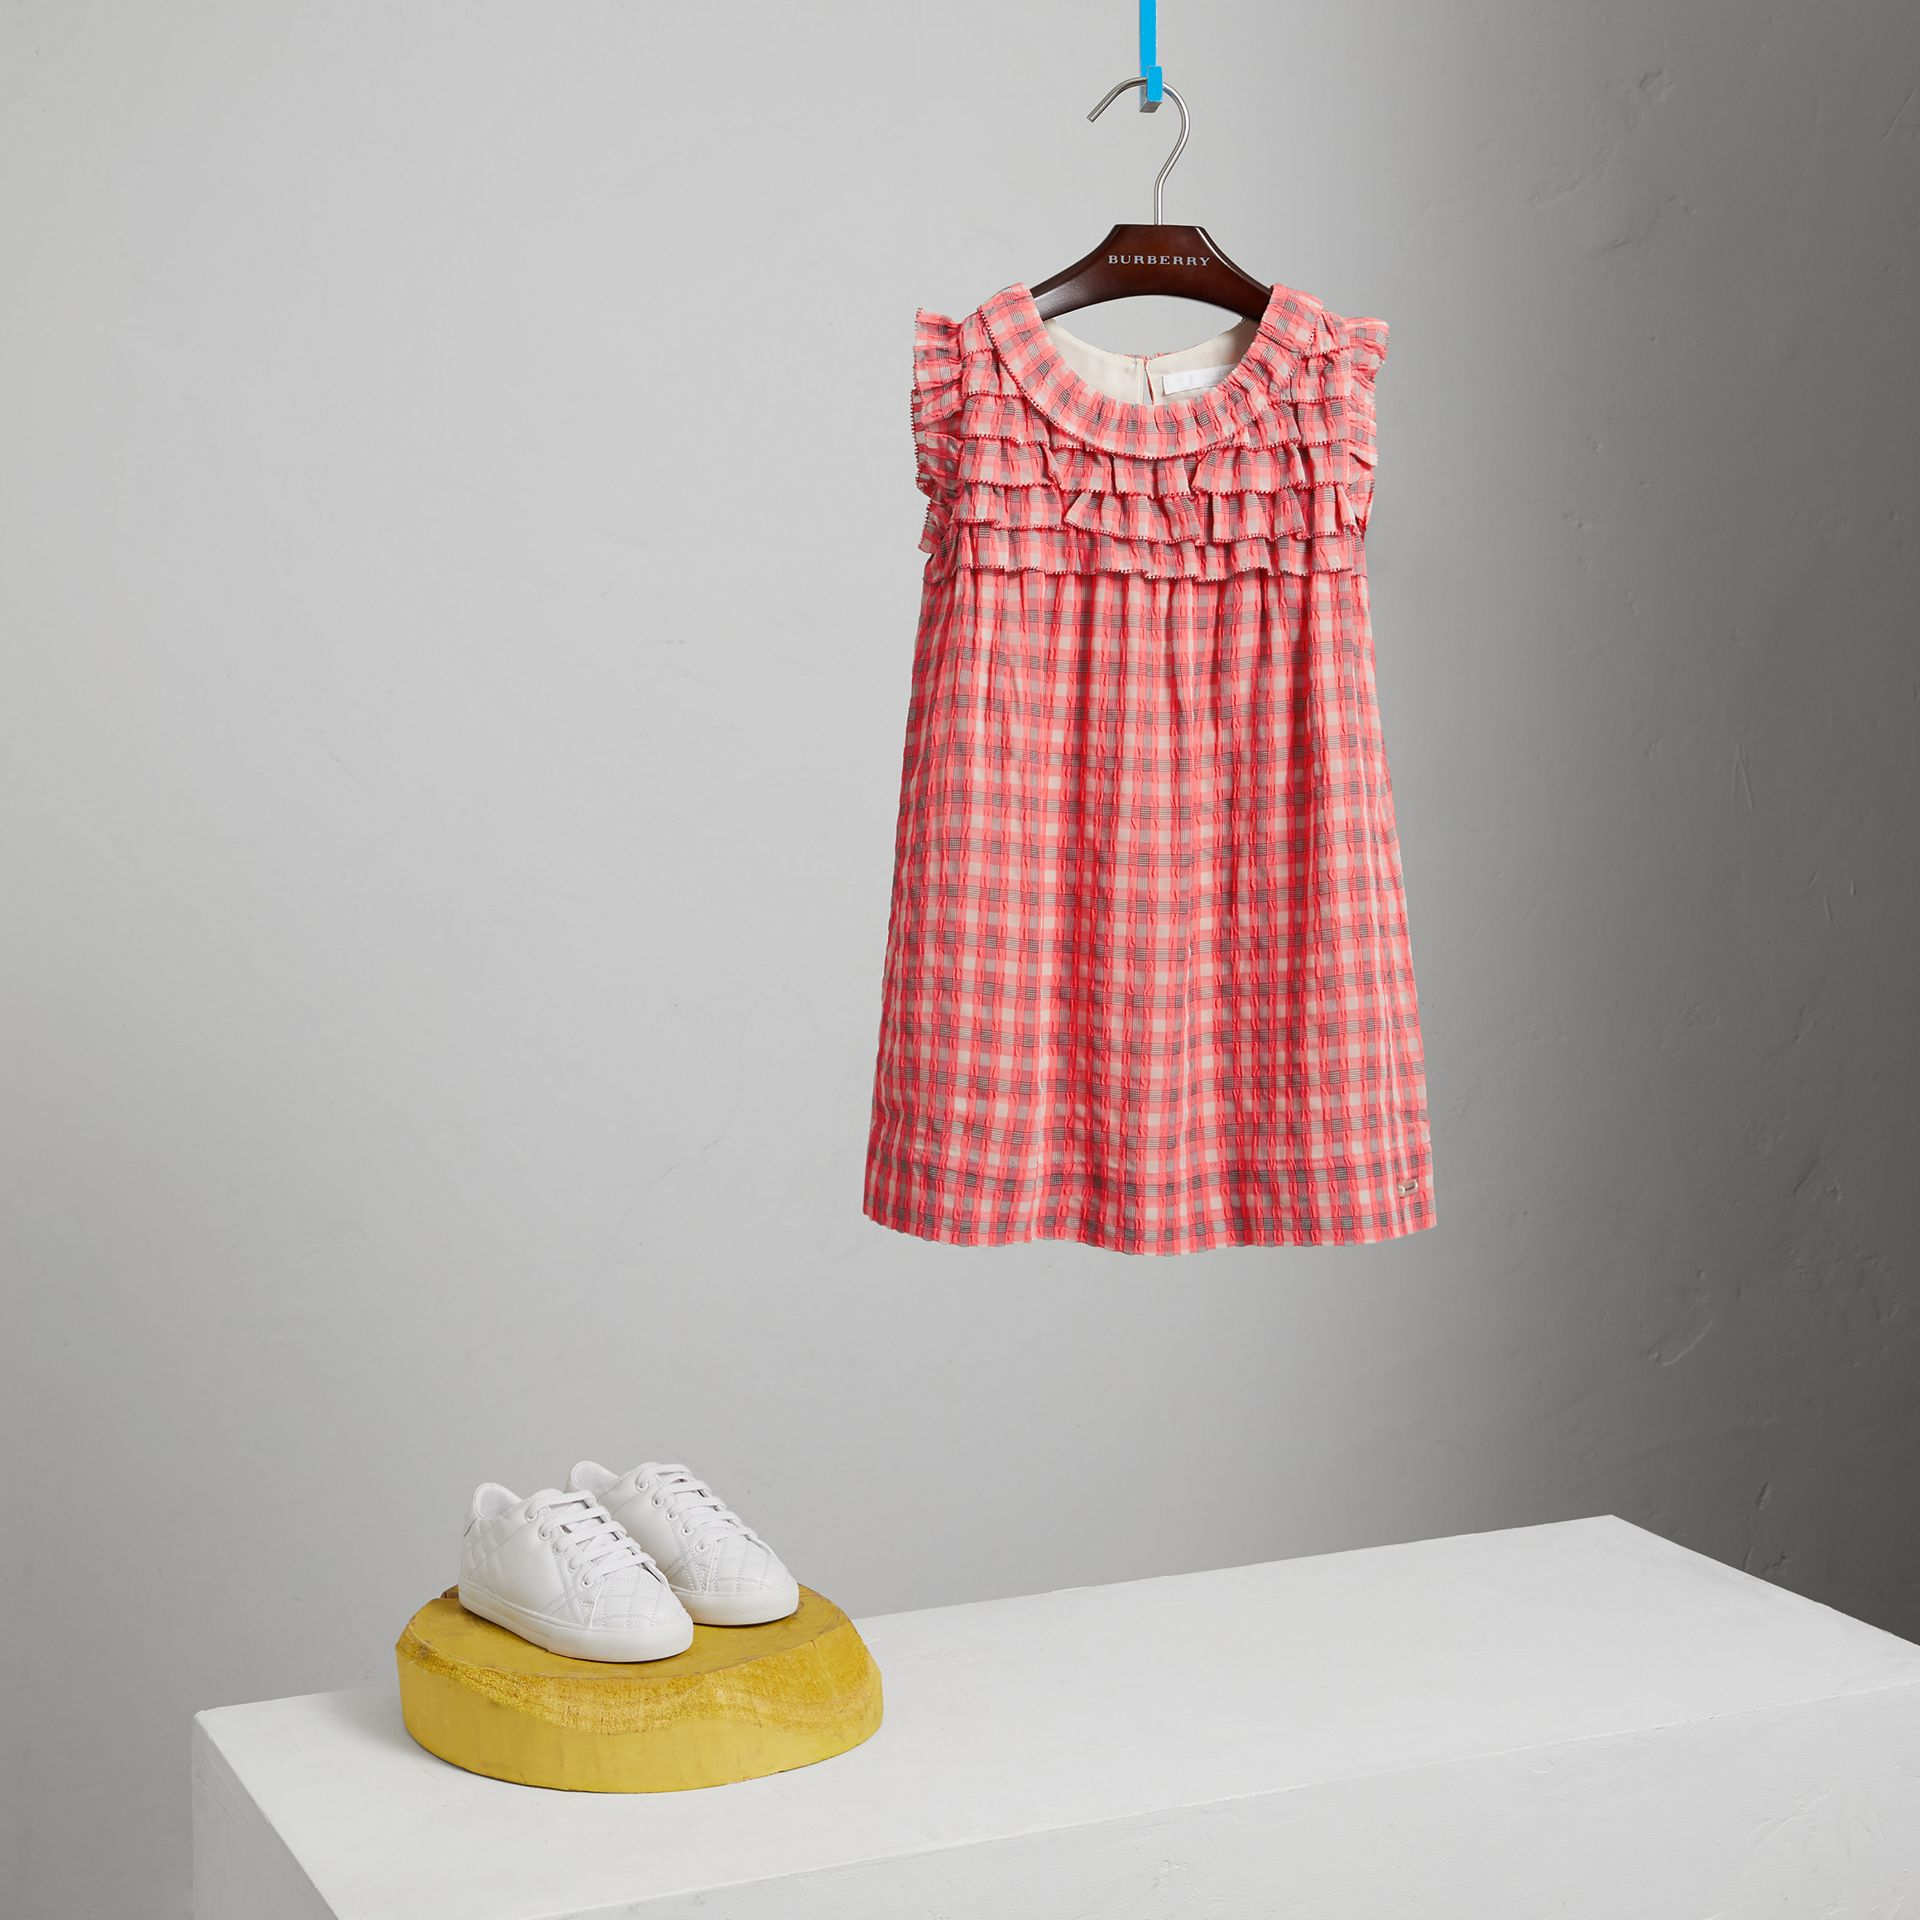 Sleeveless Check Seersucker Dress in Bright Coral Pink - Children | Burberry - gallery image 2